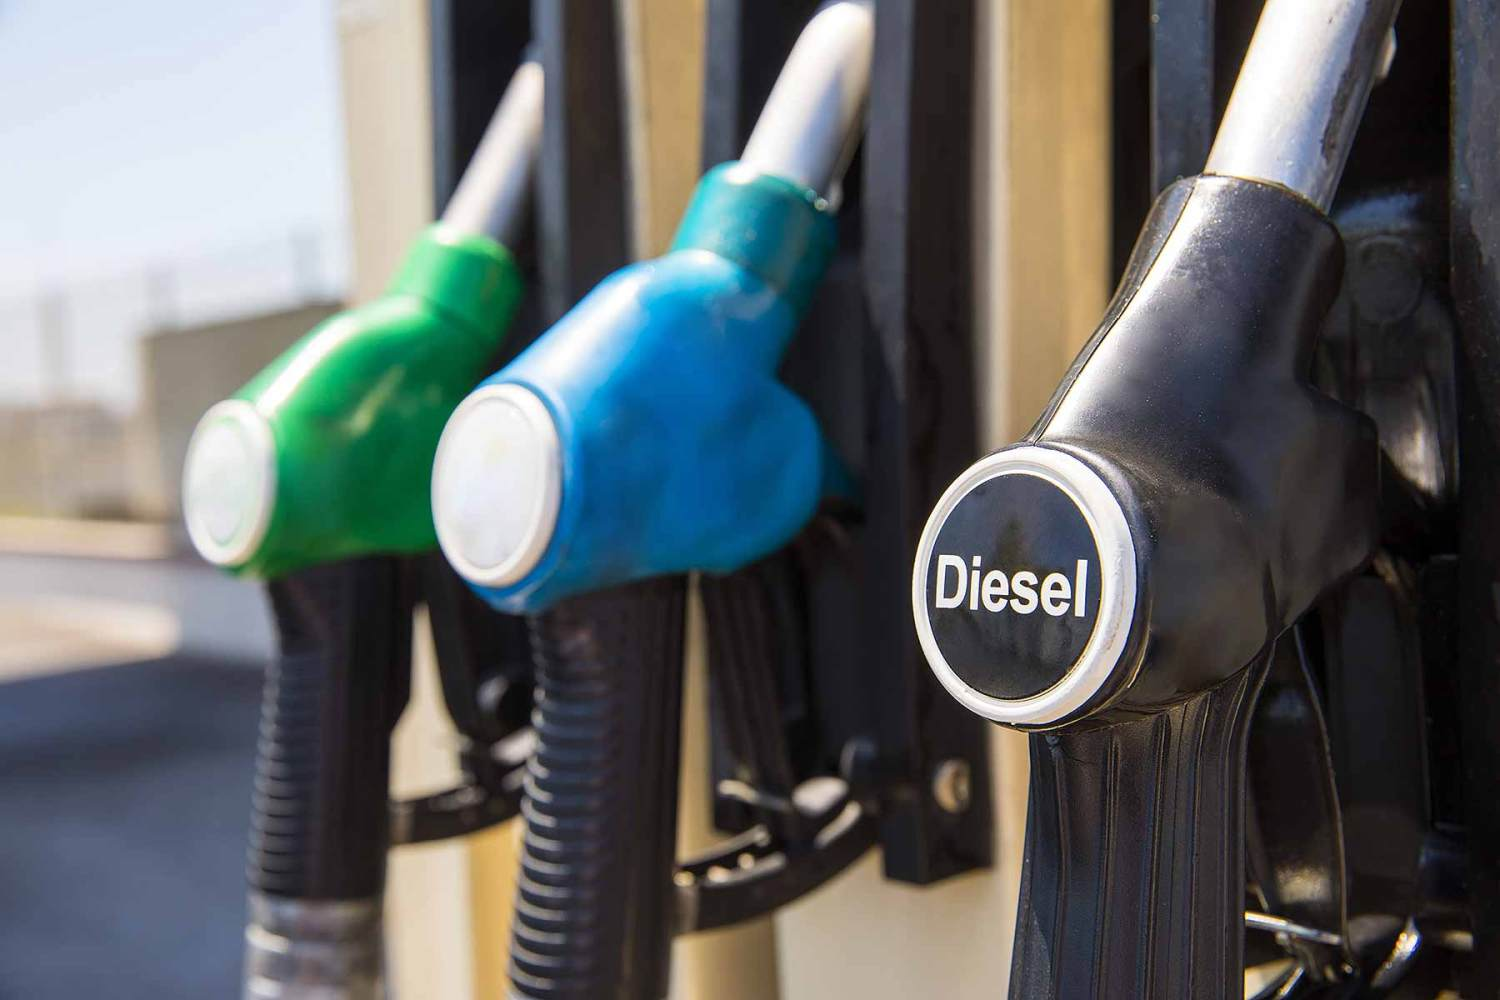 Diesel pump at a filling station: the fuel's popularity is declining